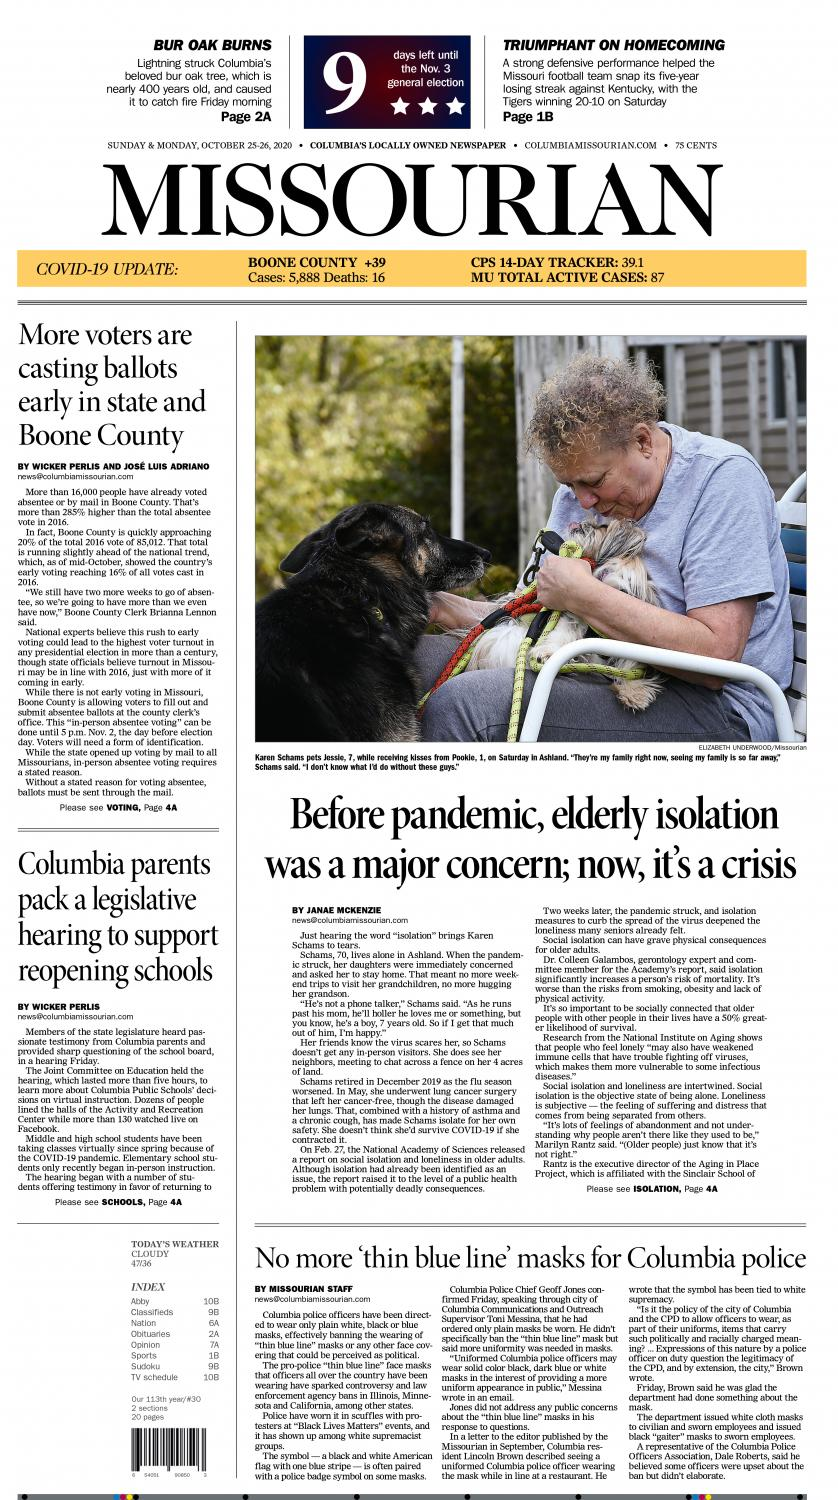 View web presentation. I worked with reporter Janae McKenzie on brainstorming about bringing visuals to her story on the elderly isolation crisis. Photographers Elizabeth Underwood and Blythe Dorrian were assigned to it.